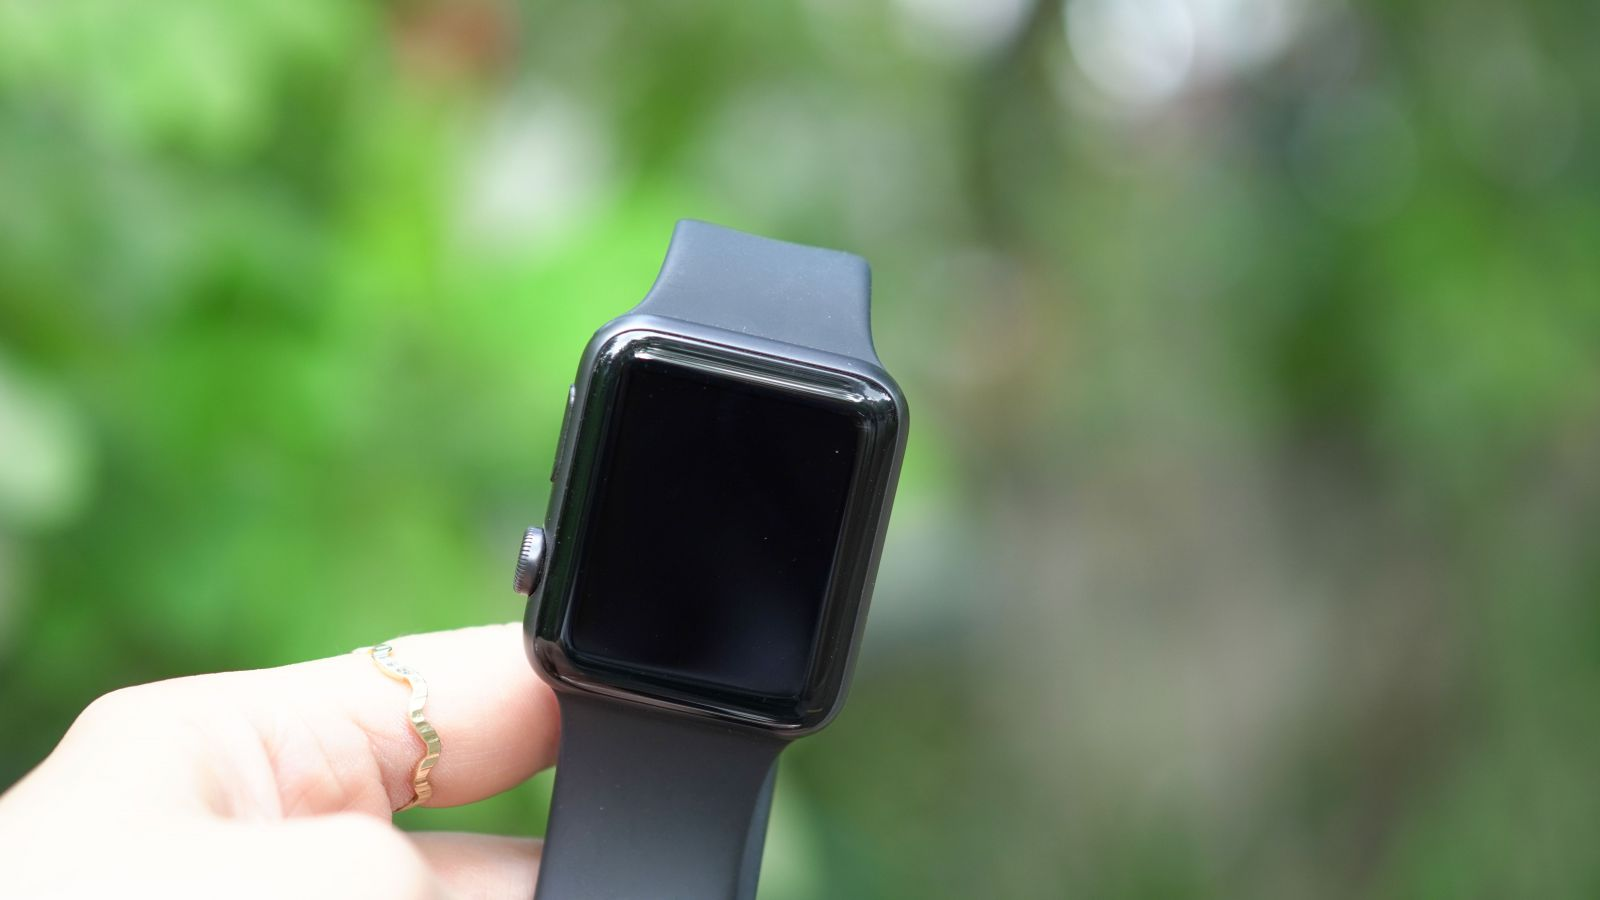 Cấu hình Apple Watch Series 3